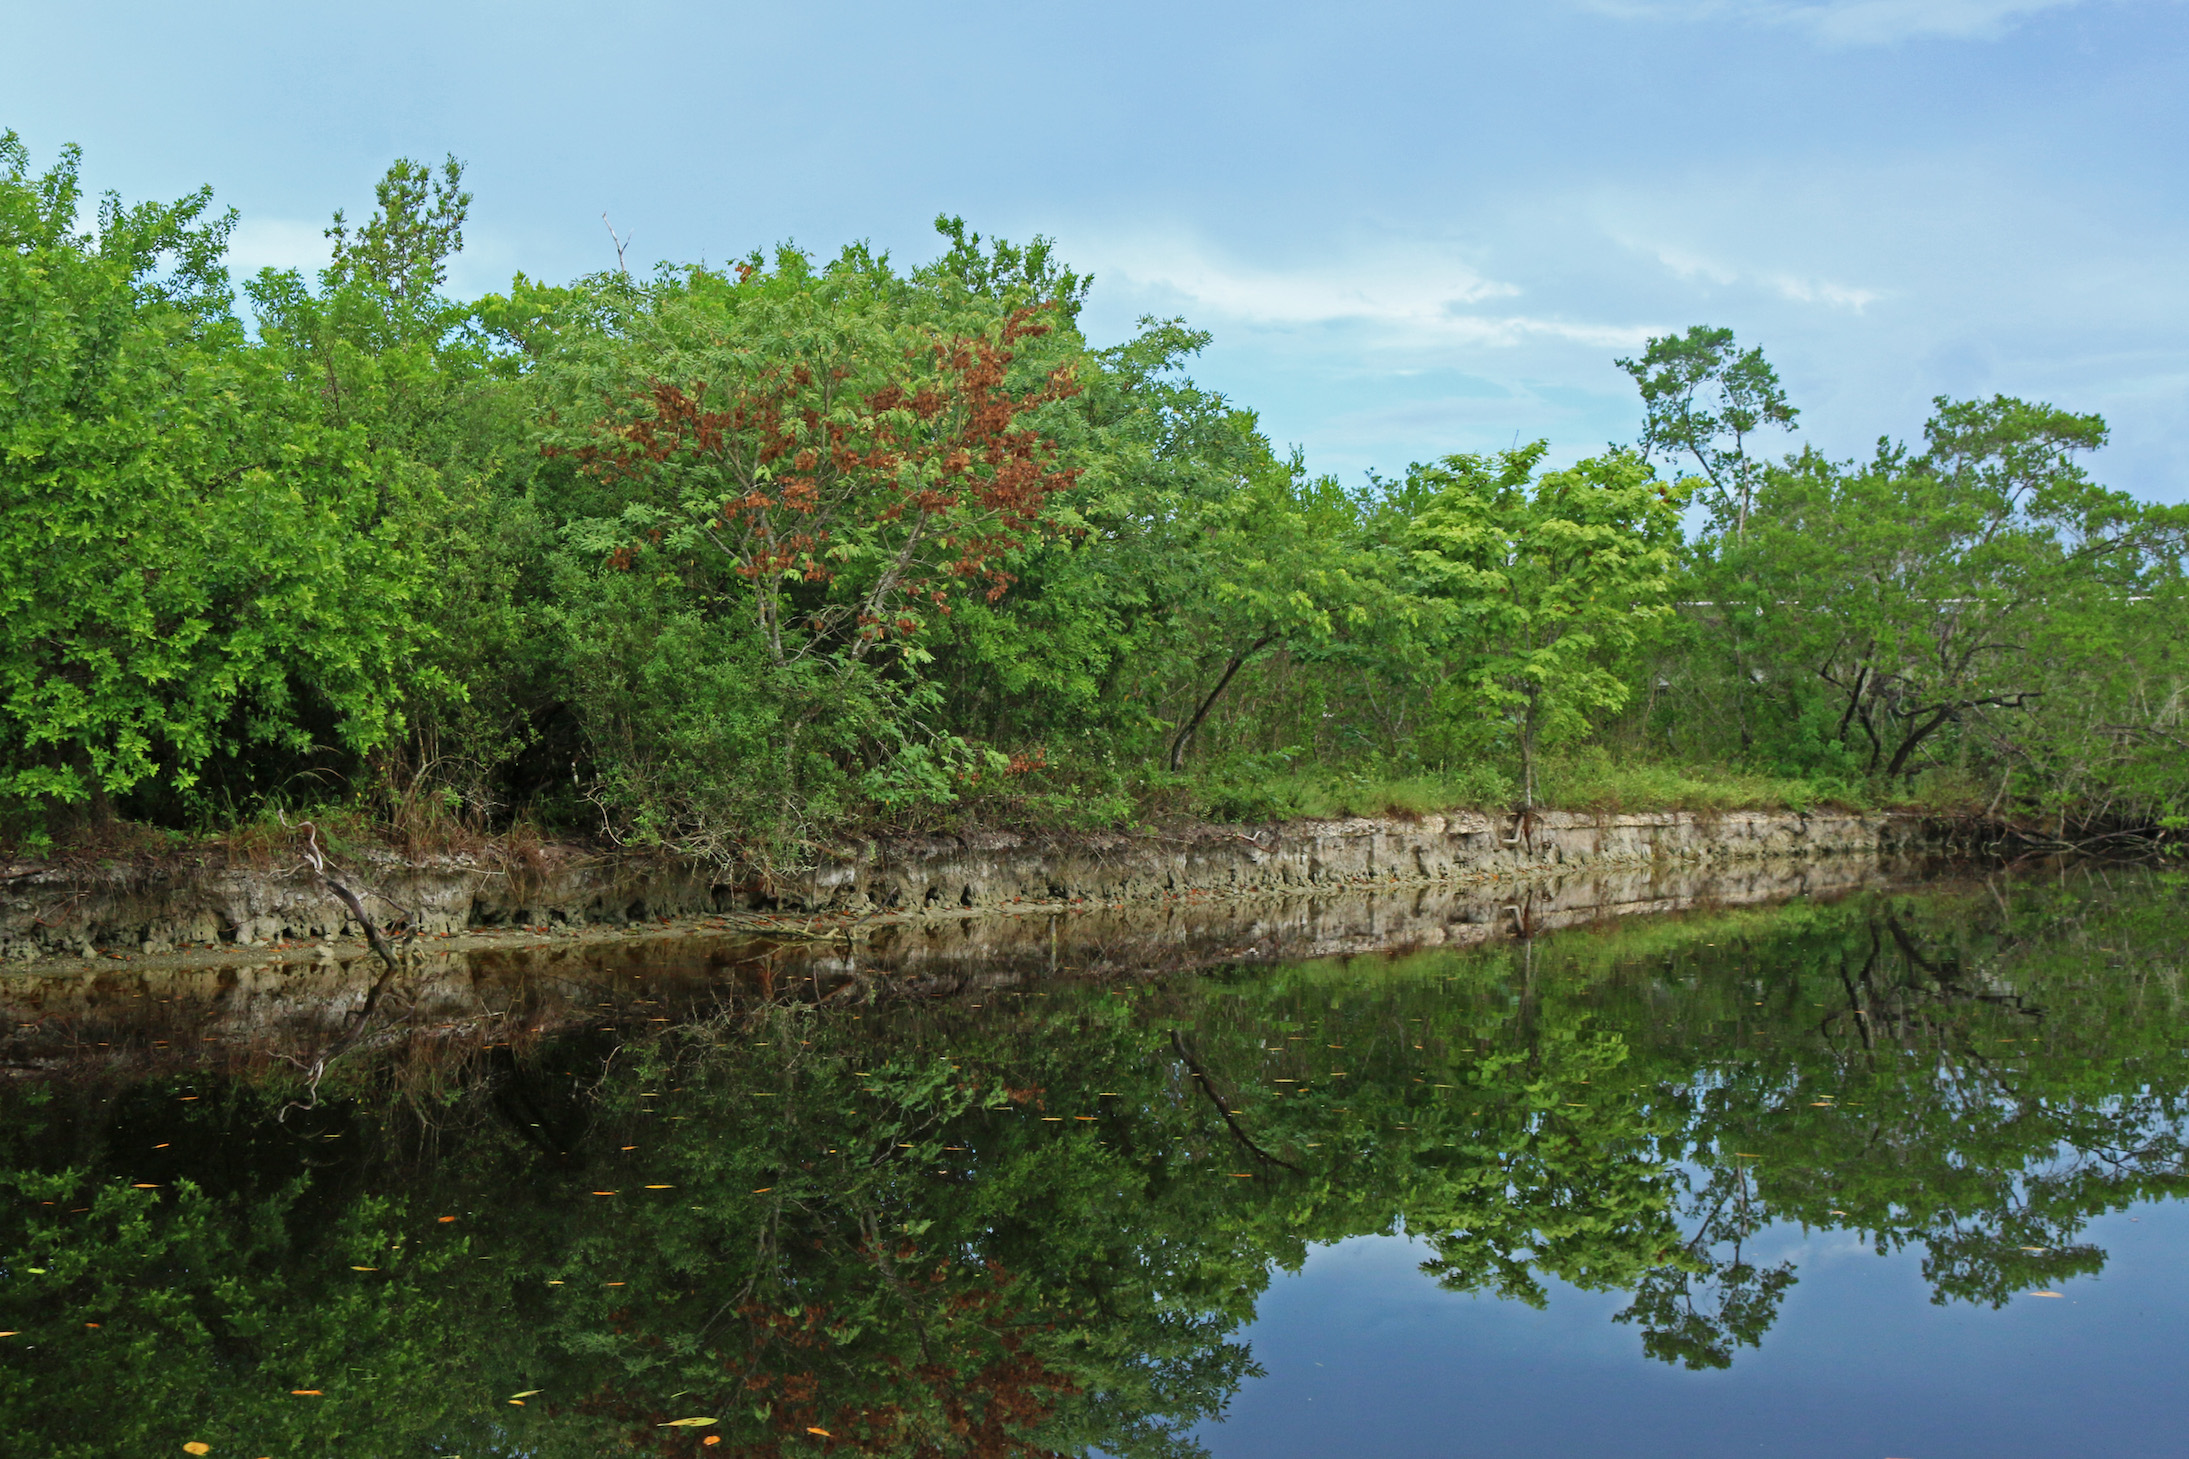 Coastal mangroves in Everglades National park